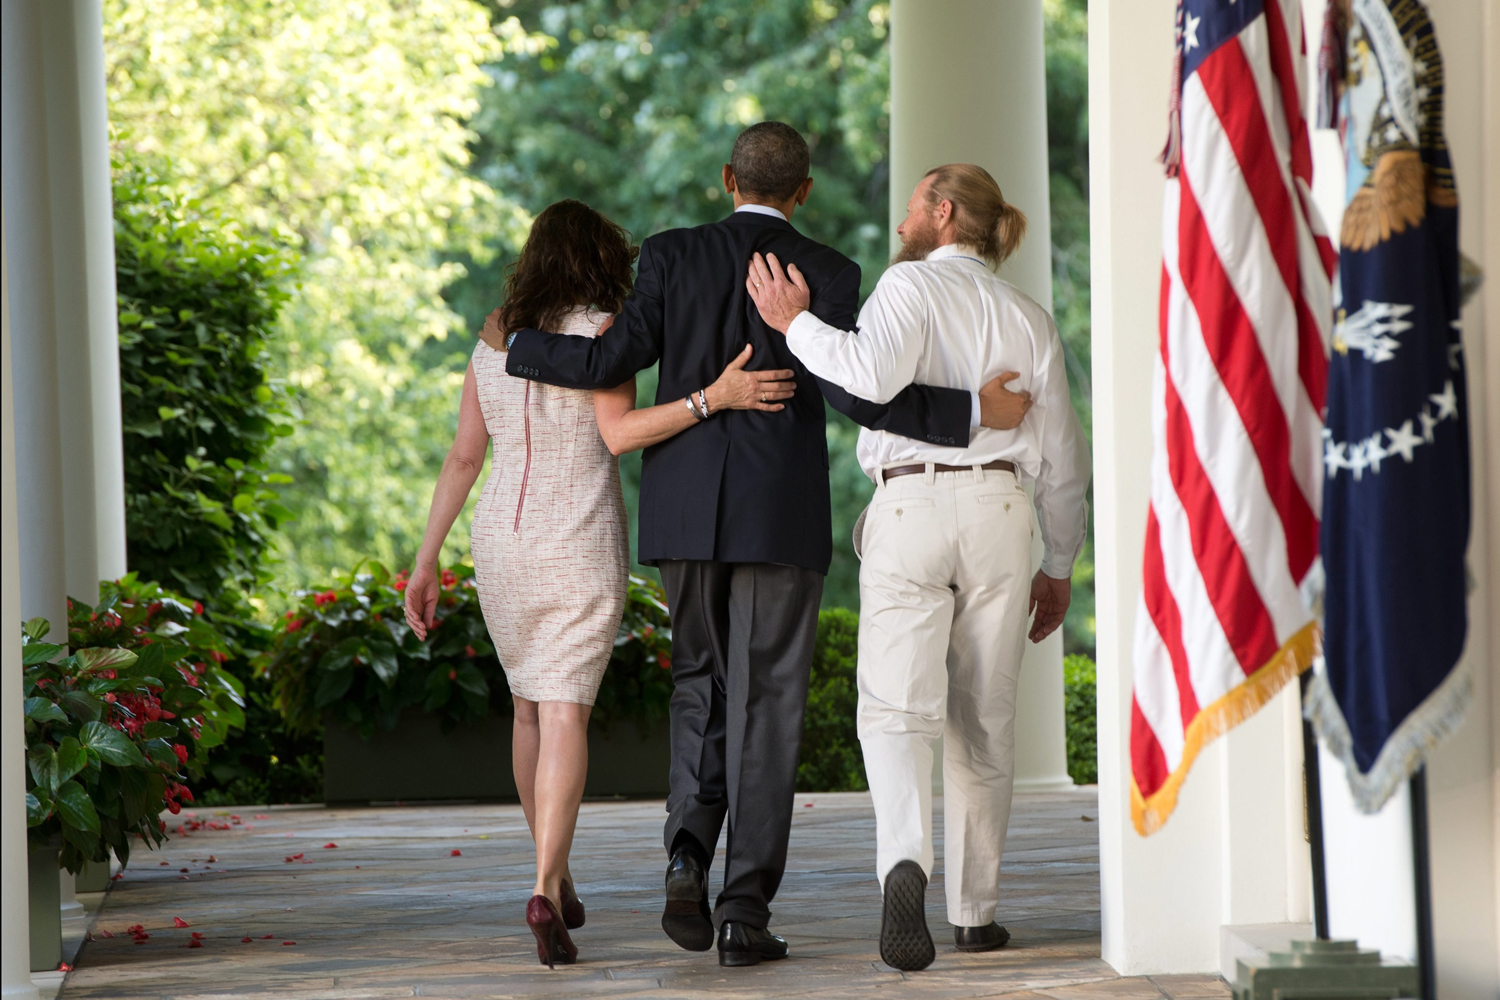 May 31, 2014. US President Barack Obama (C), with the parents of US Army Sgt. Bowe Bergdahl, Jani Bergdahl (L) and Bob Bergdahl (R), walks back to the Oval Office after making a statement regarding the release from captivity of Sgt. Bowe Bergdahl by the Taliban, in the Rose Garden at the White House in Washington, DC.